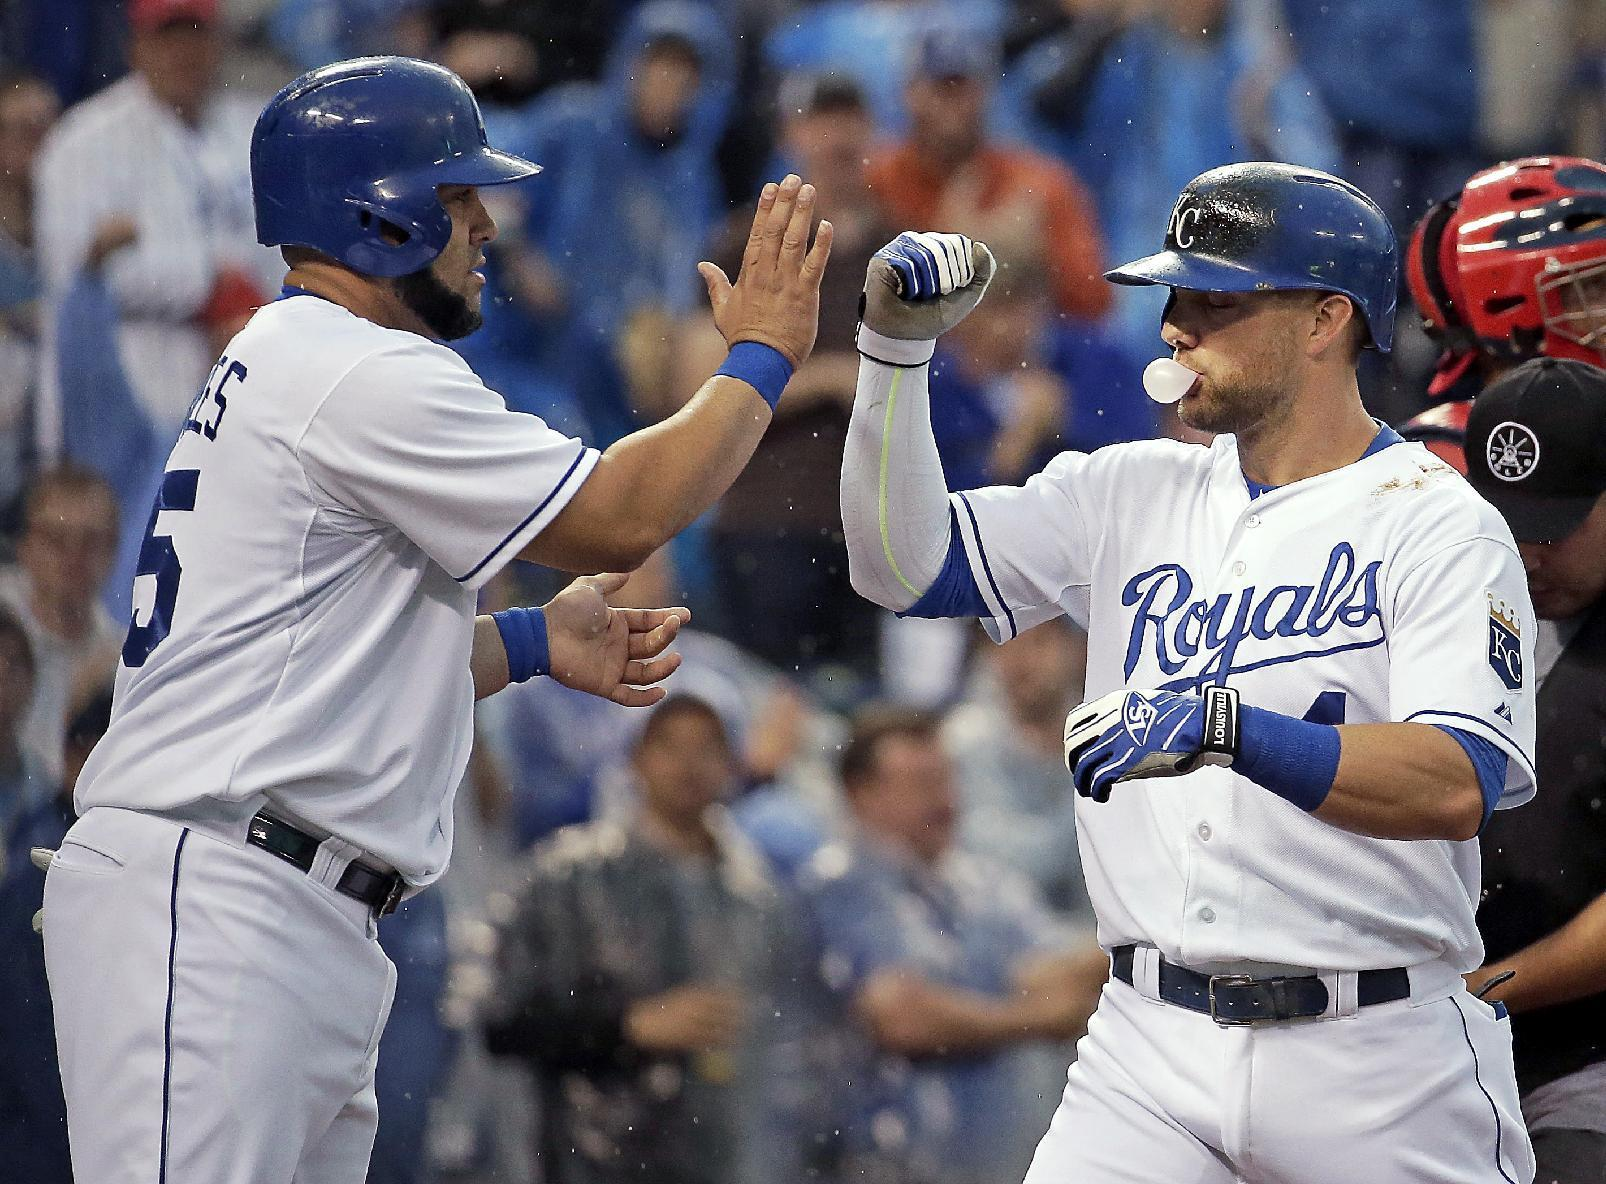 Gordon, Volquez lead KC over Cards in rain-shortened game